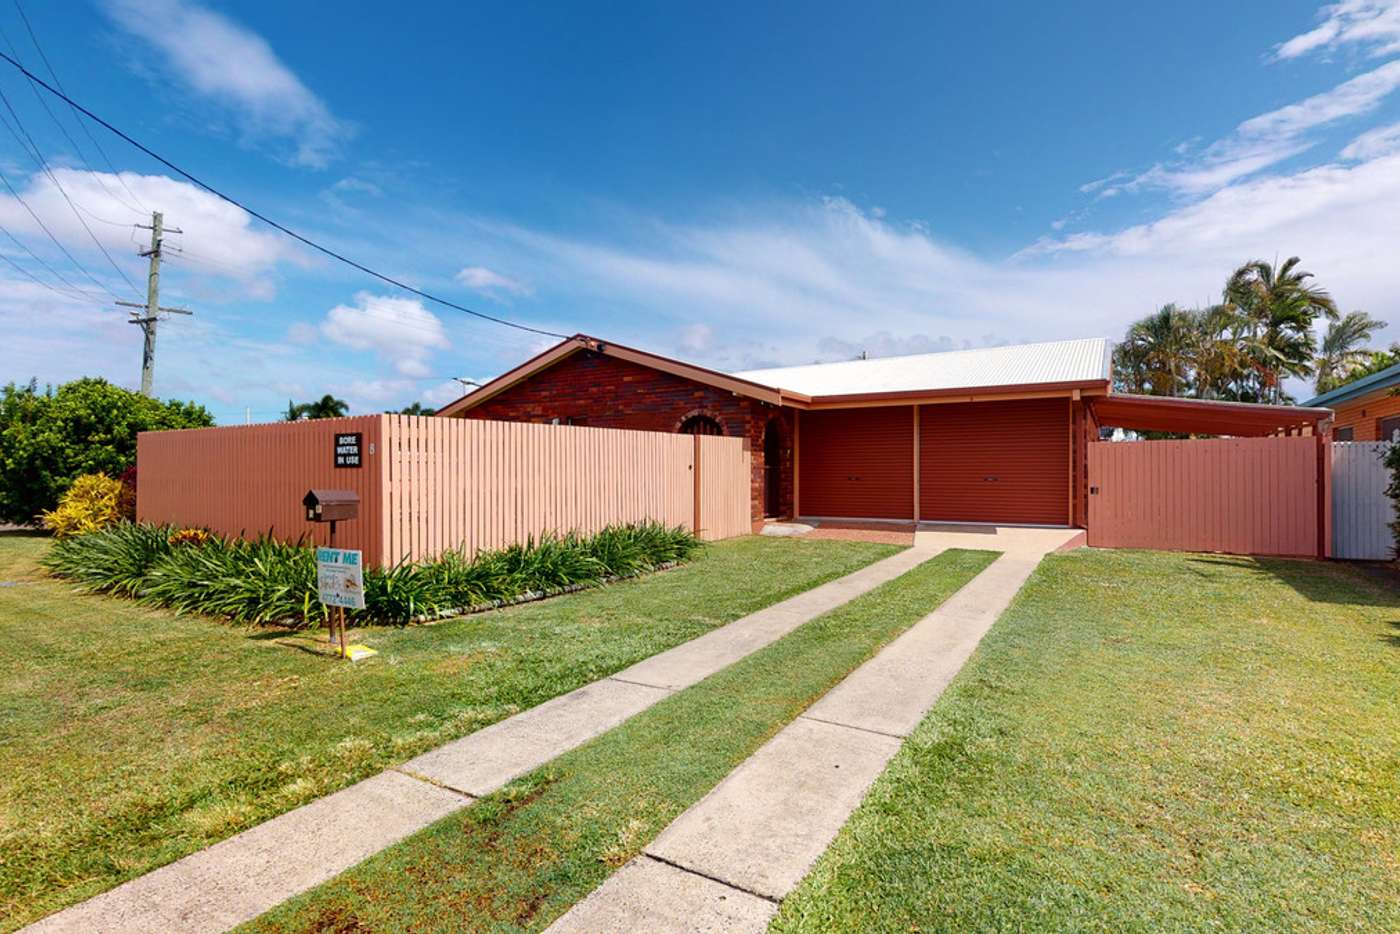 Main view of Homely house listing, 8 Wareham Street, Aitkenvale QLD 4814